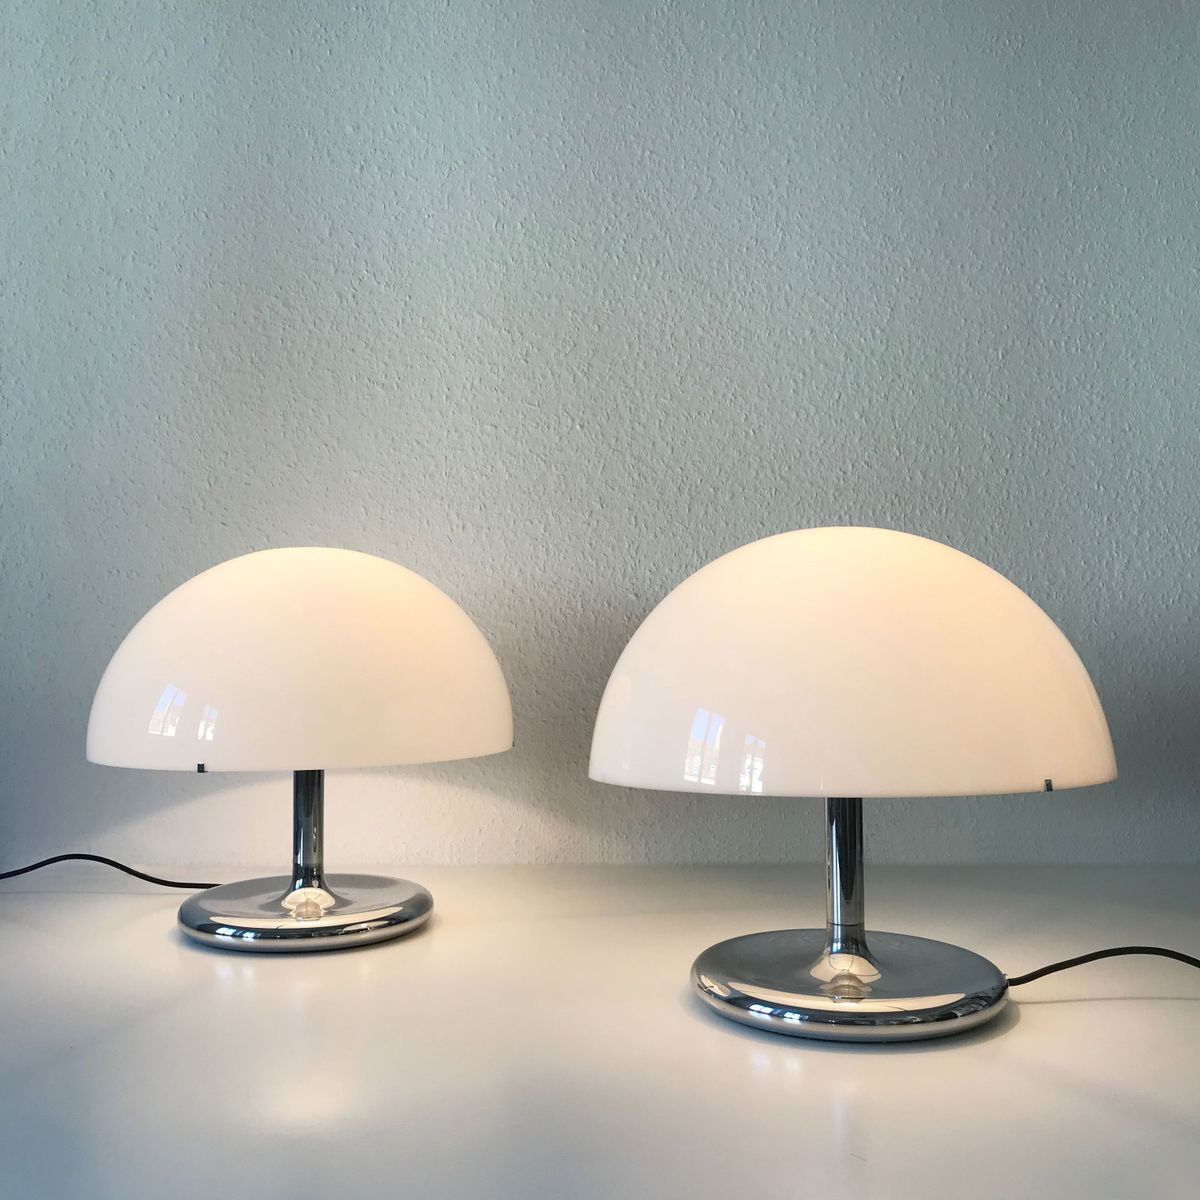 Mid century modern table lamps 1970s set of 2 for sale at pamono mid century modern table lamps 1970s set of 2 geotapseo Image collections